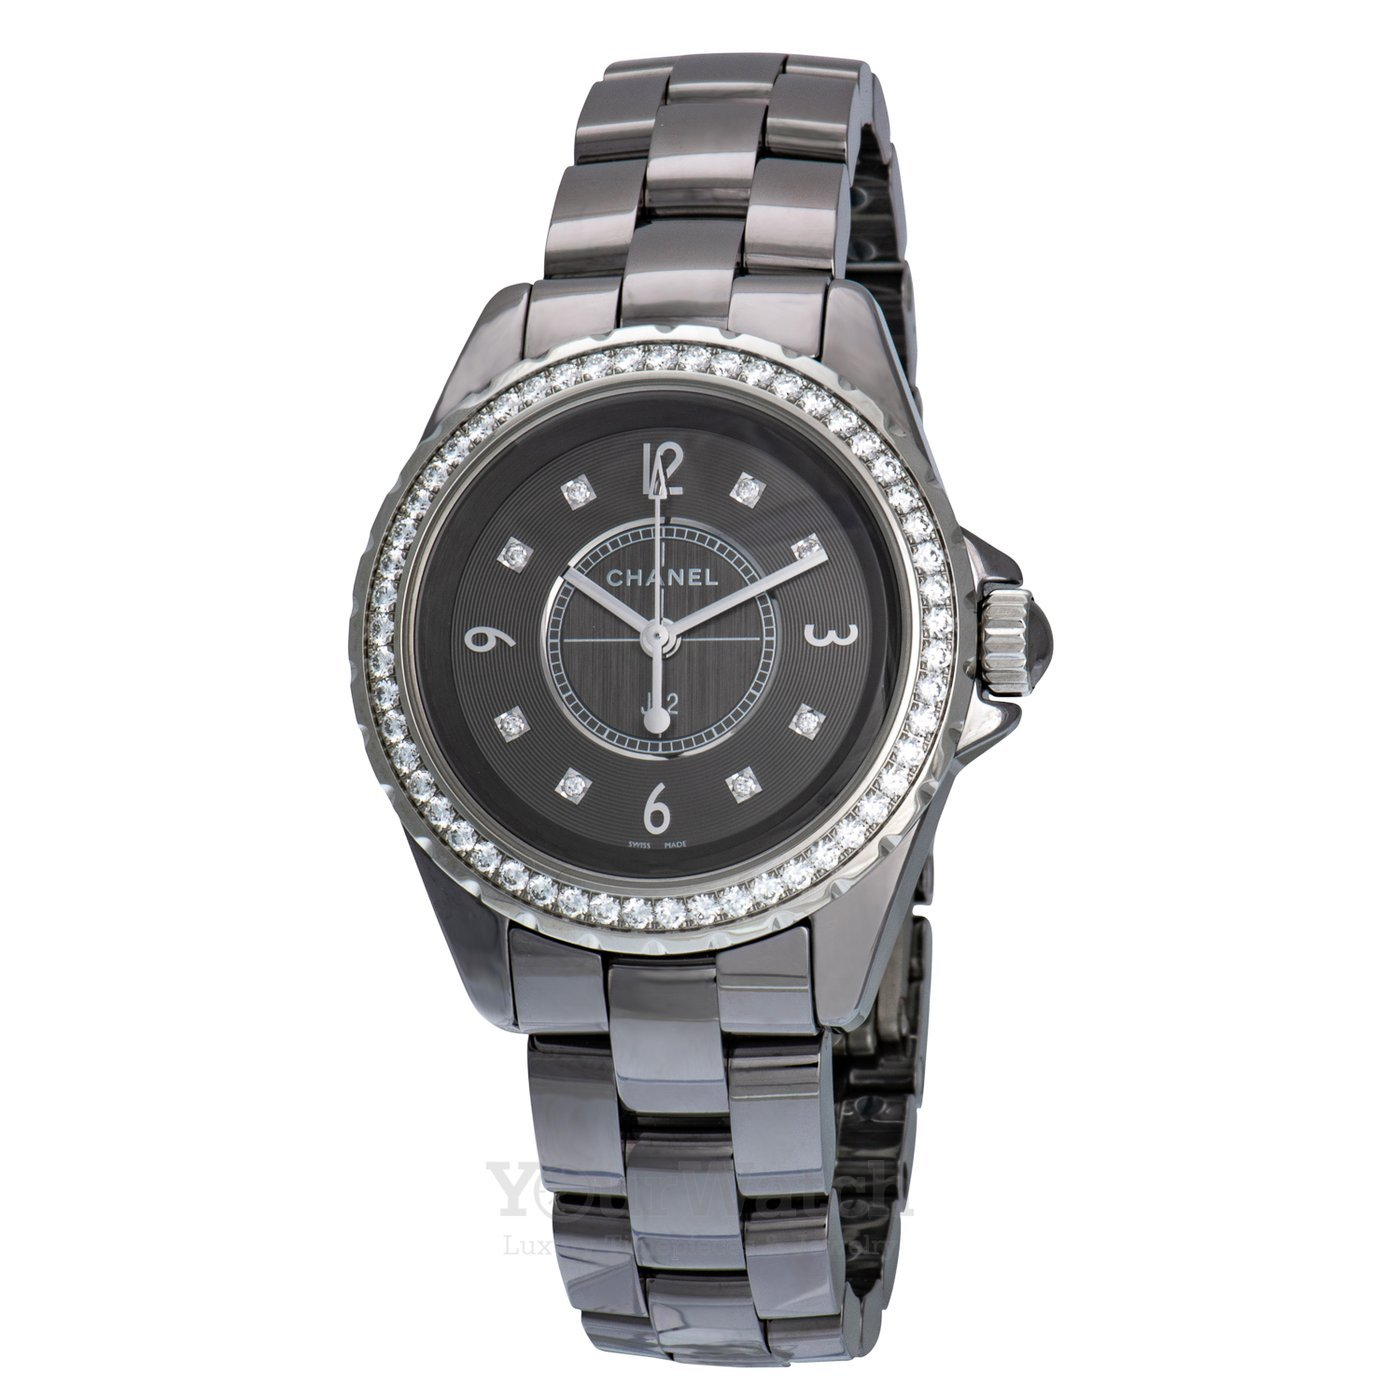 J12 Quartz Ladies Watch Your Watch Llc